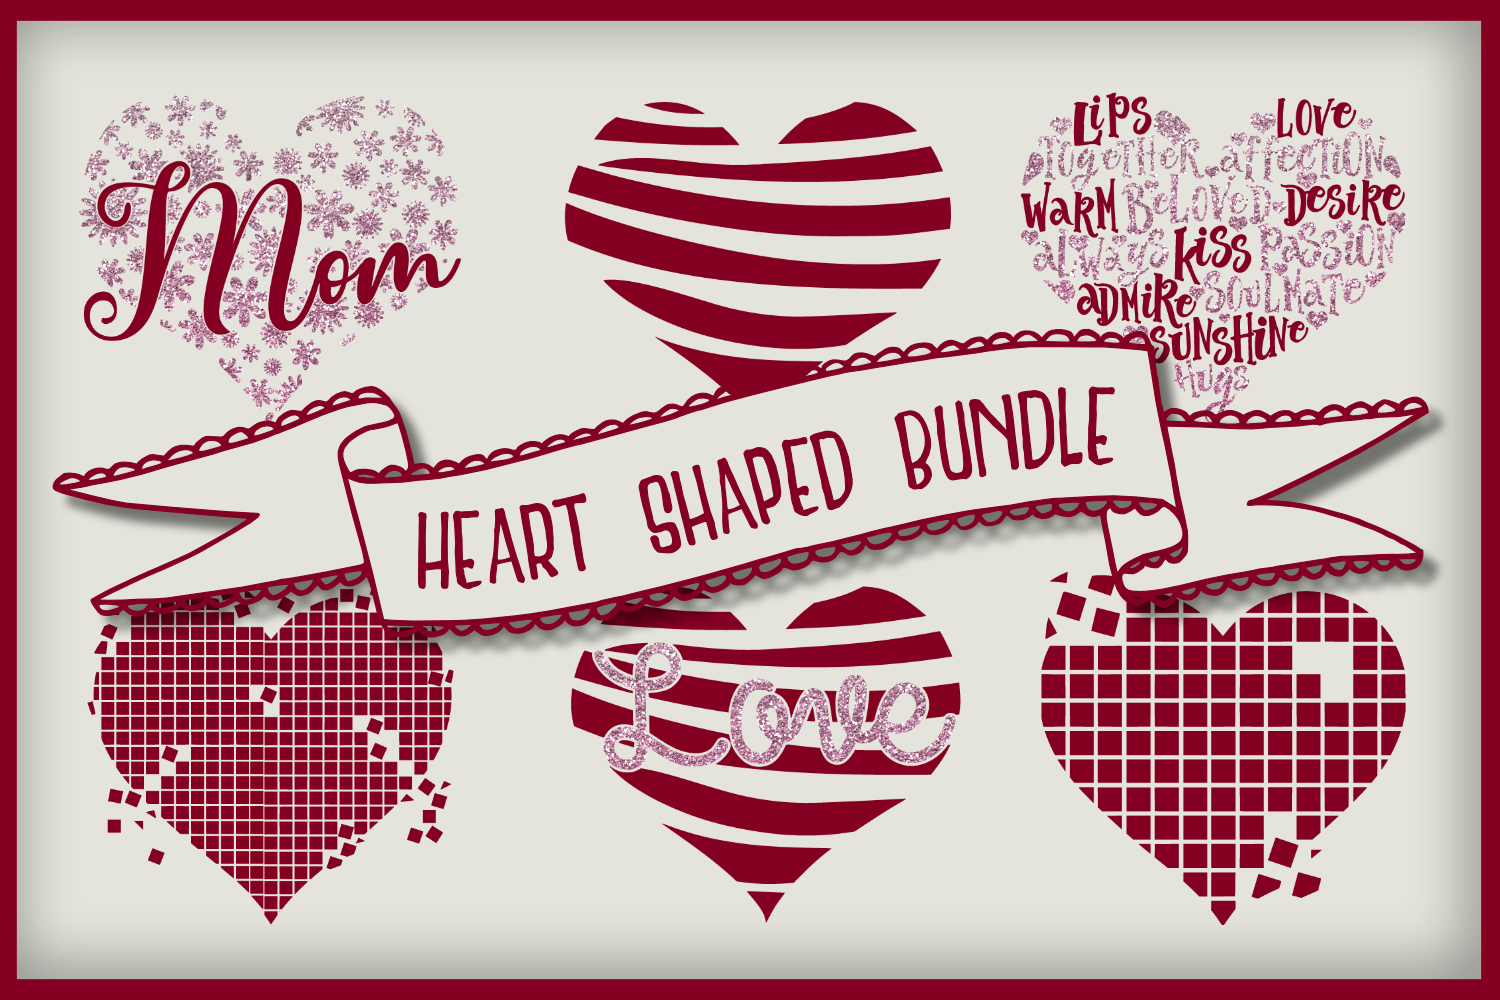 Download Free Heart Shaped Bundle Graphic By Boertiek Creative Fabrica for Cricut Explore, Silhouette and other cutting machines.